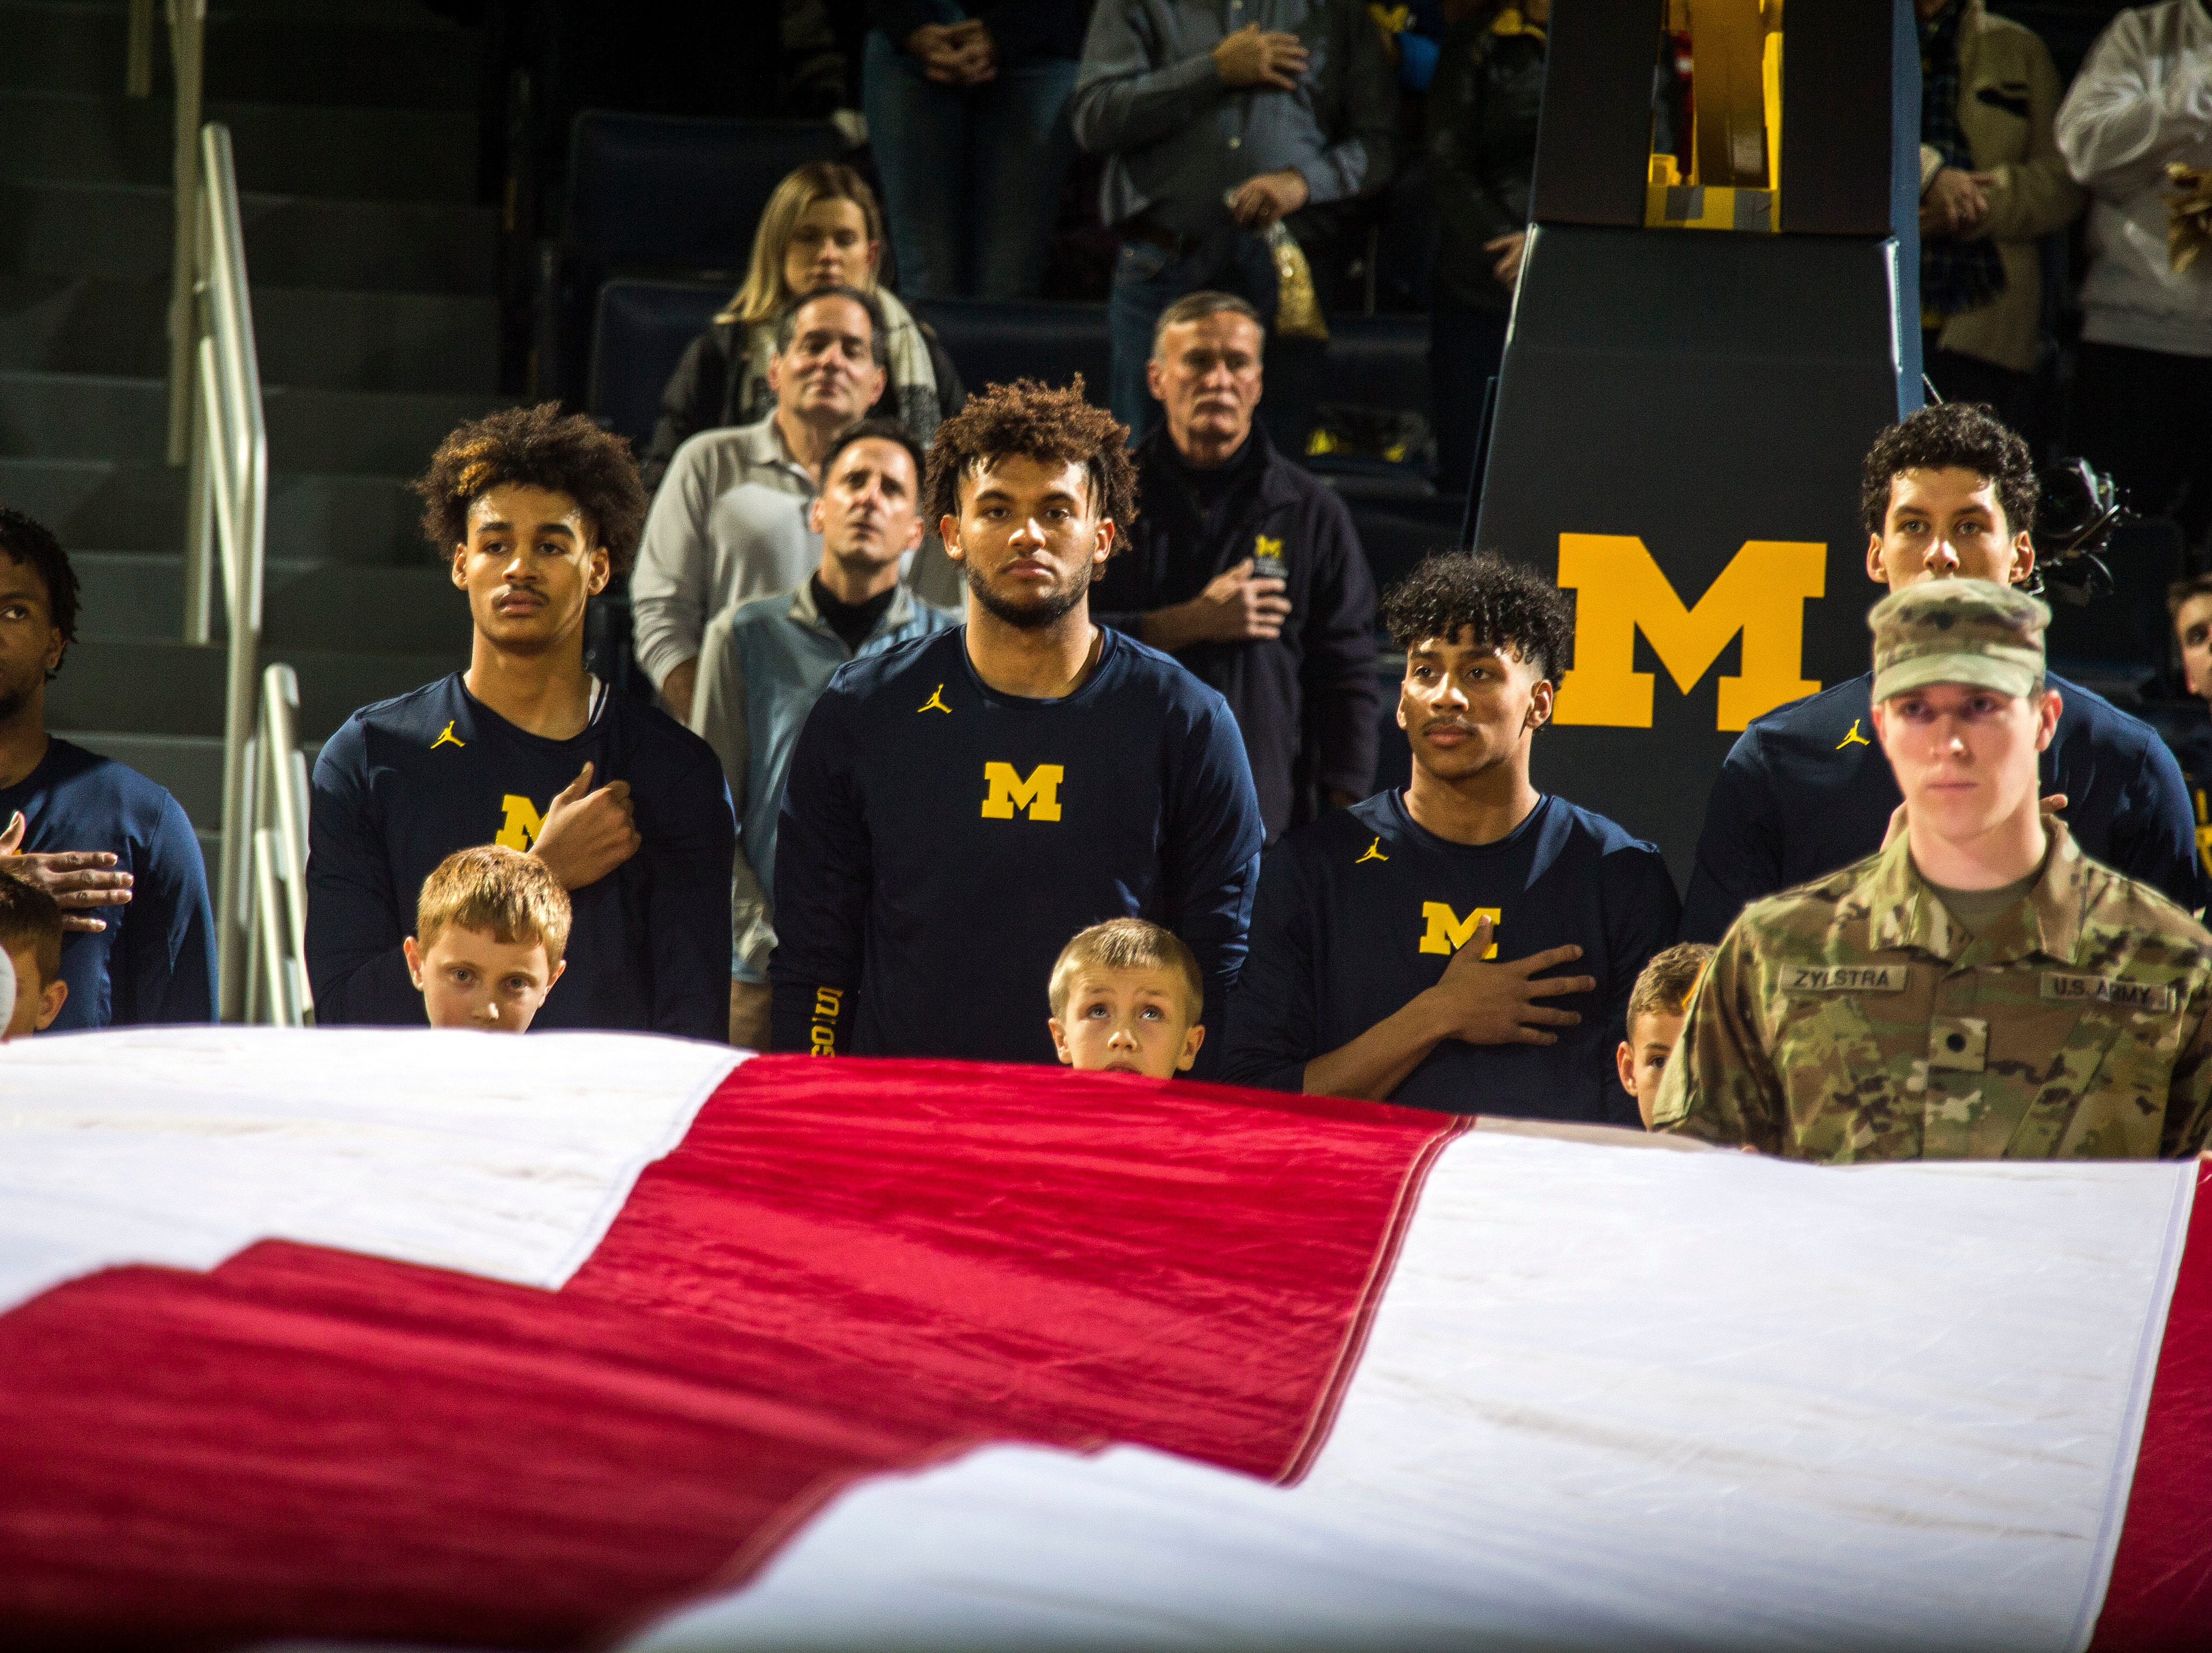 Michigan players line up on the court opposite Holy Cross players with a large American flag held across the court for the playing for the national anthem, before an NCAA college basketball game at Crisler Center in Ann Arbor, Mich., Saturday, Nov. 10, 2018. (AP Photo/Tony Ding)